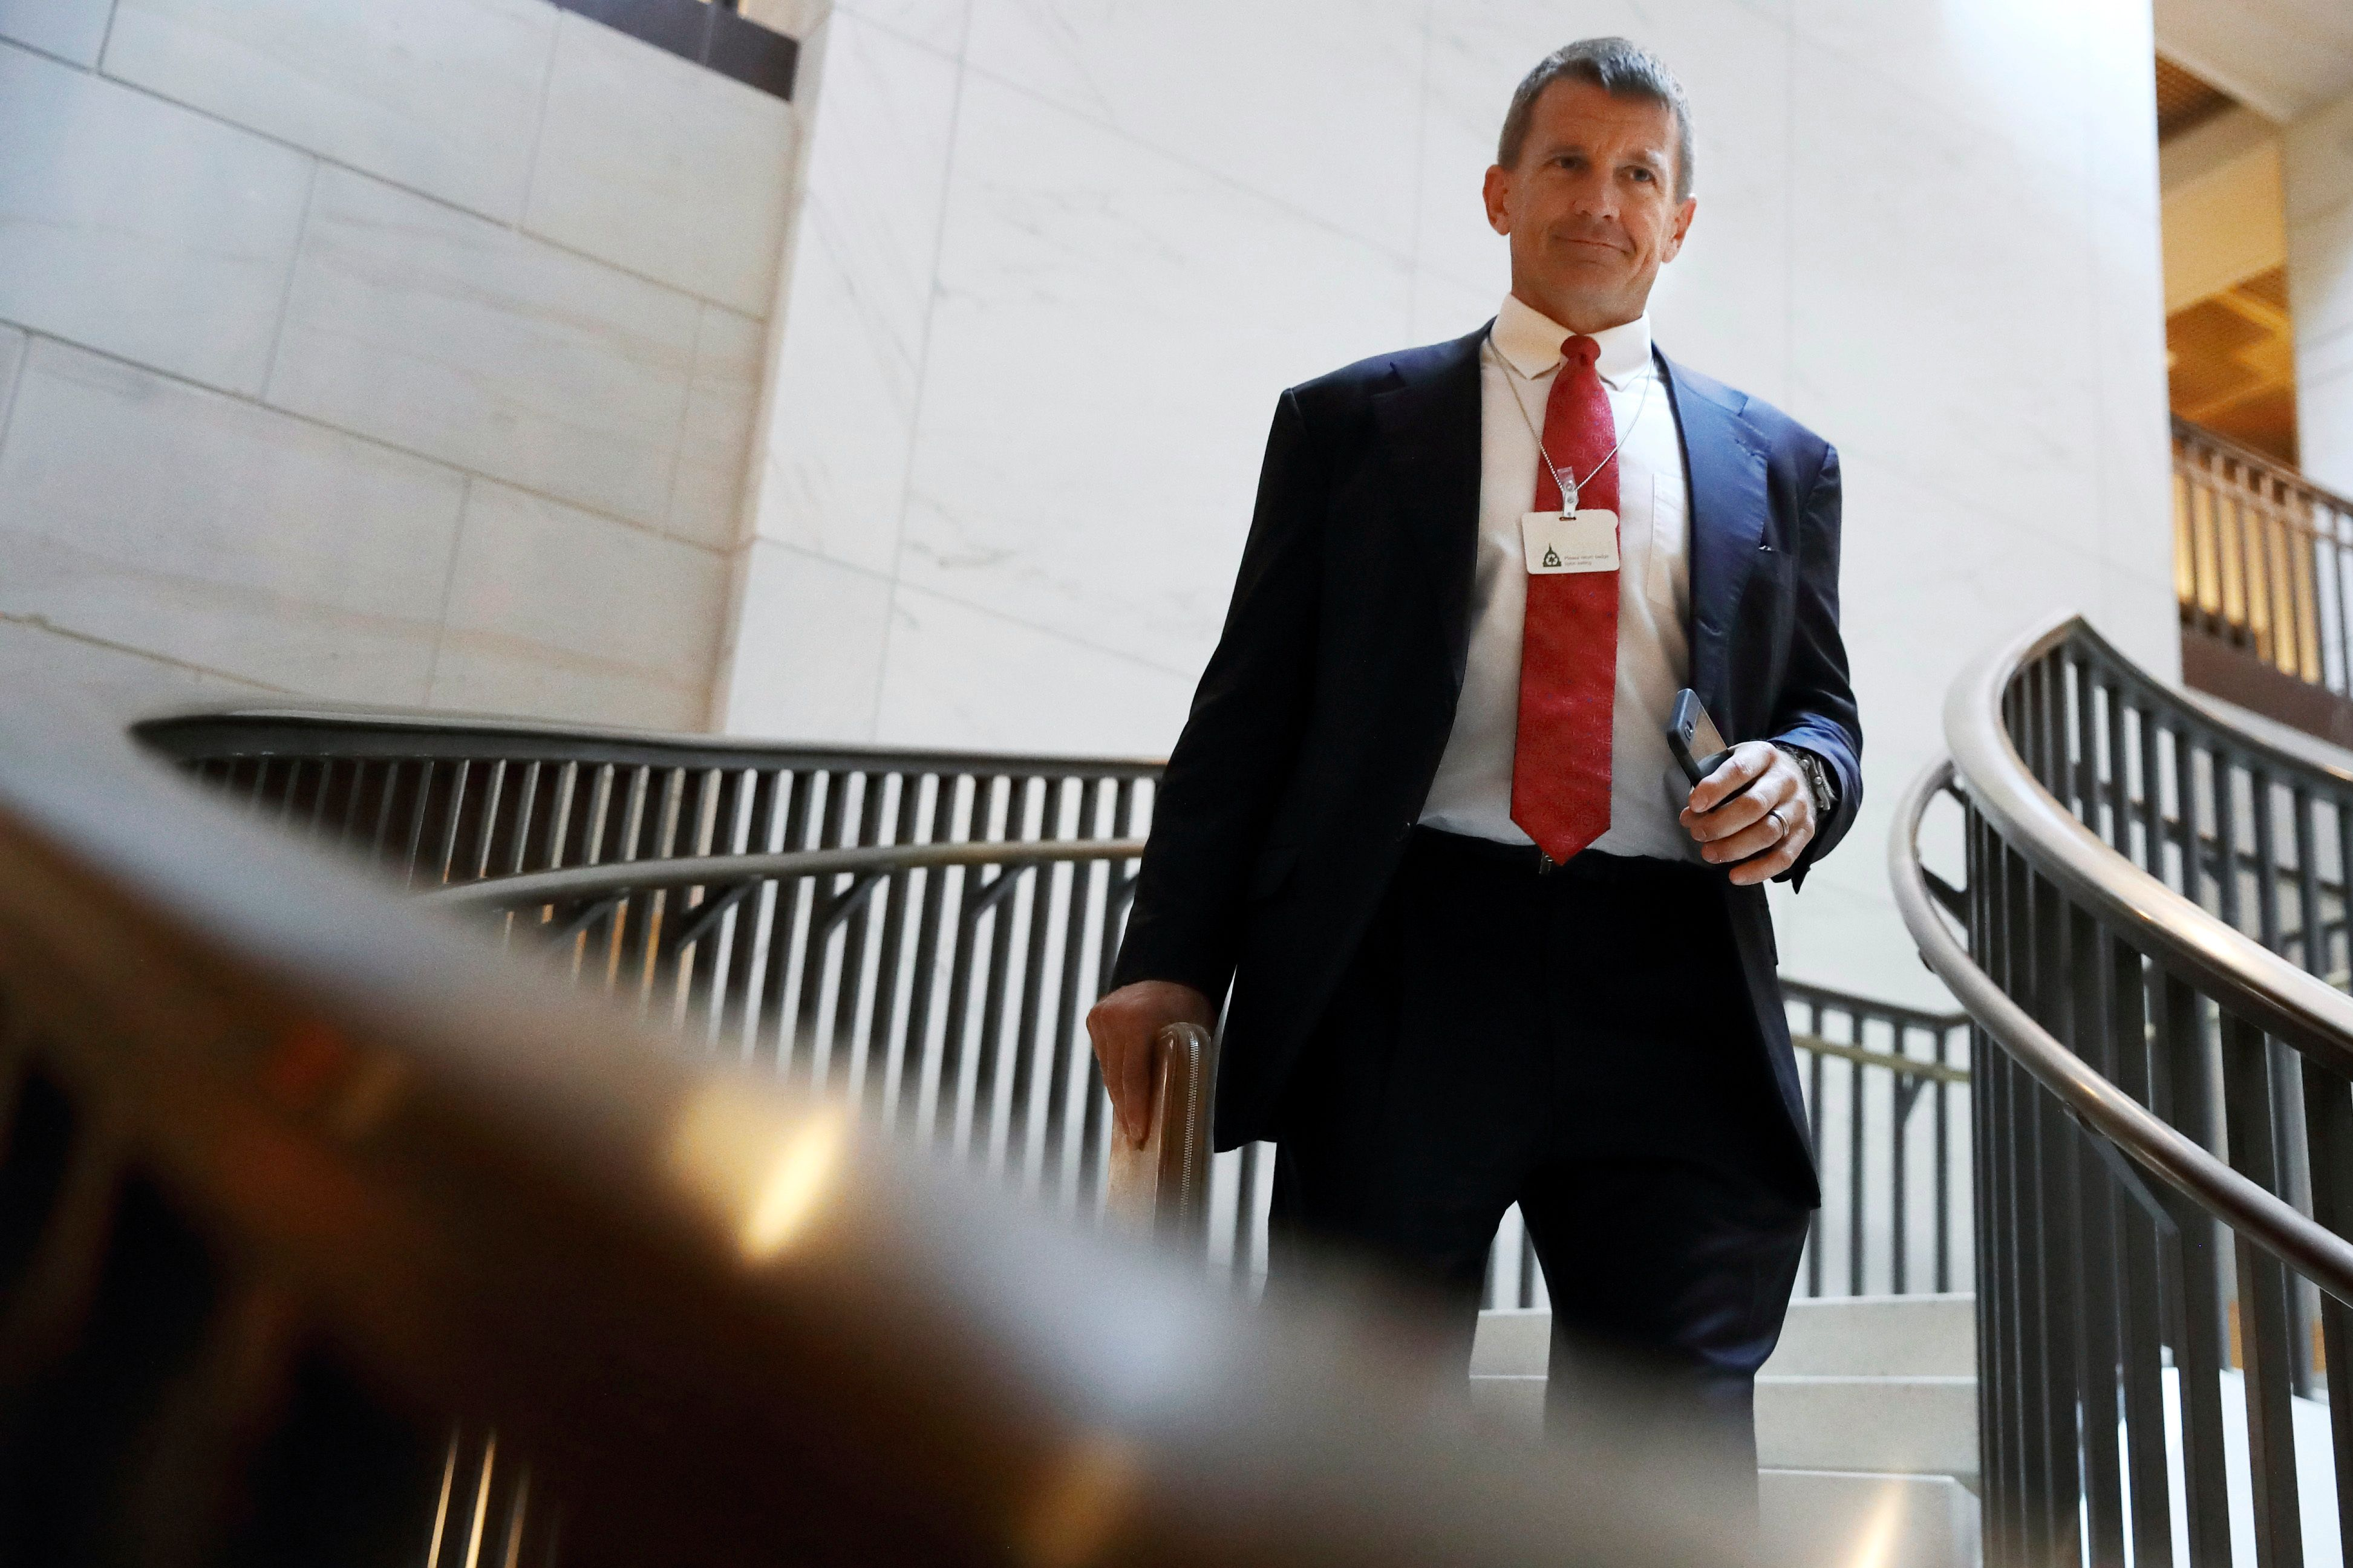 Blackwater founder Erik Prince, the brother of former Education Secretary Betsy DeVos, had been connected to the Donald Trump